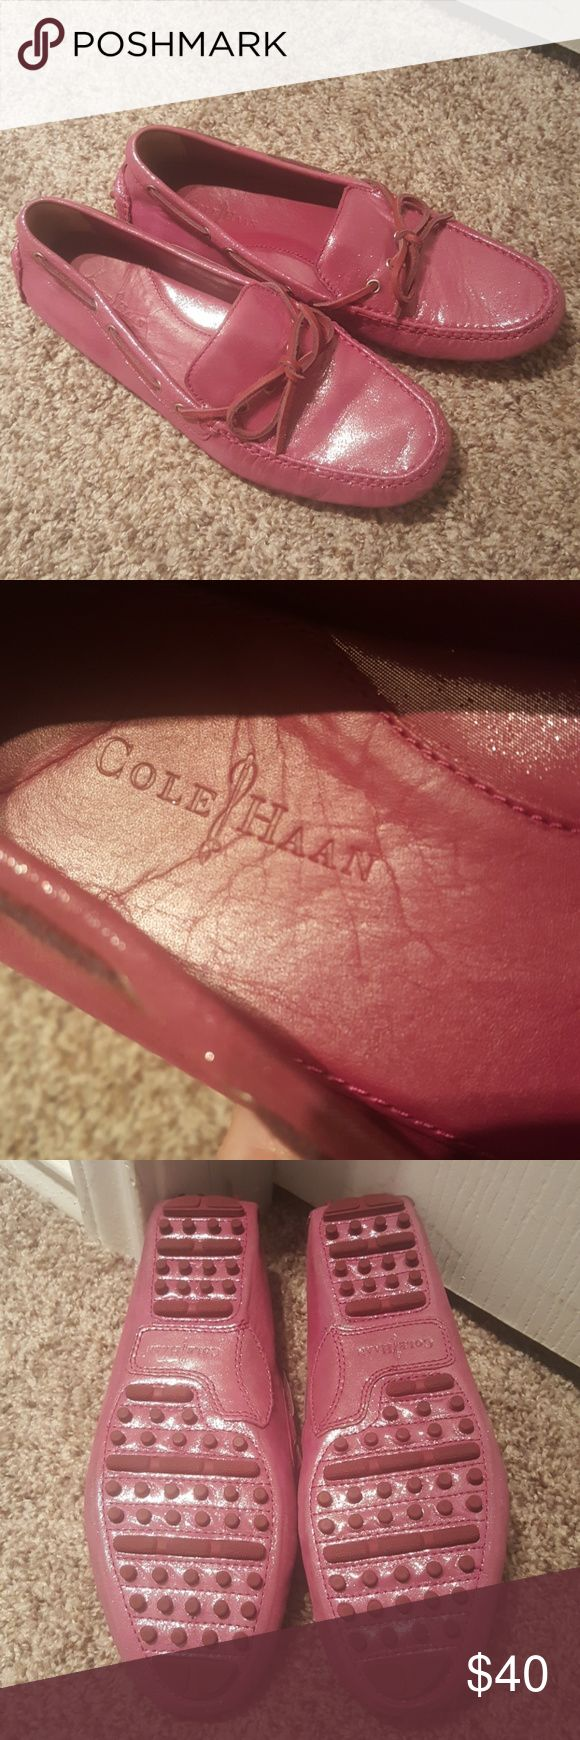 Cole Haan drivers Irredecent pink Cole Haan drivers. Perfect condition. Hardley worn Cole Haan Shoes Flats & Loafers